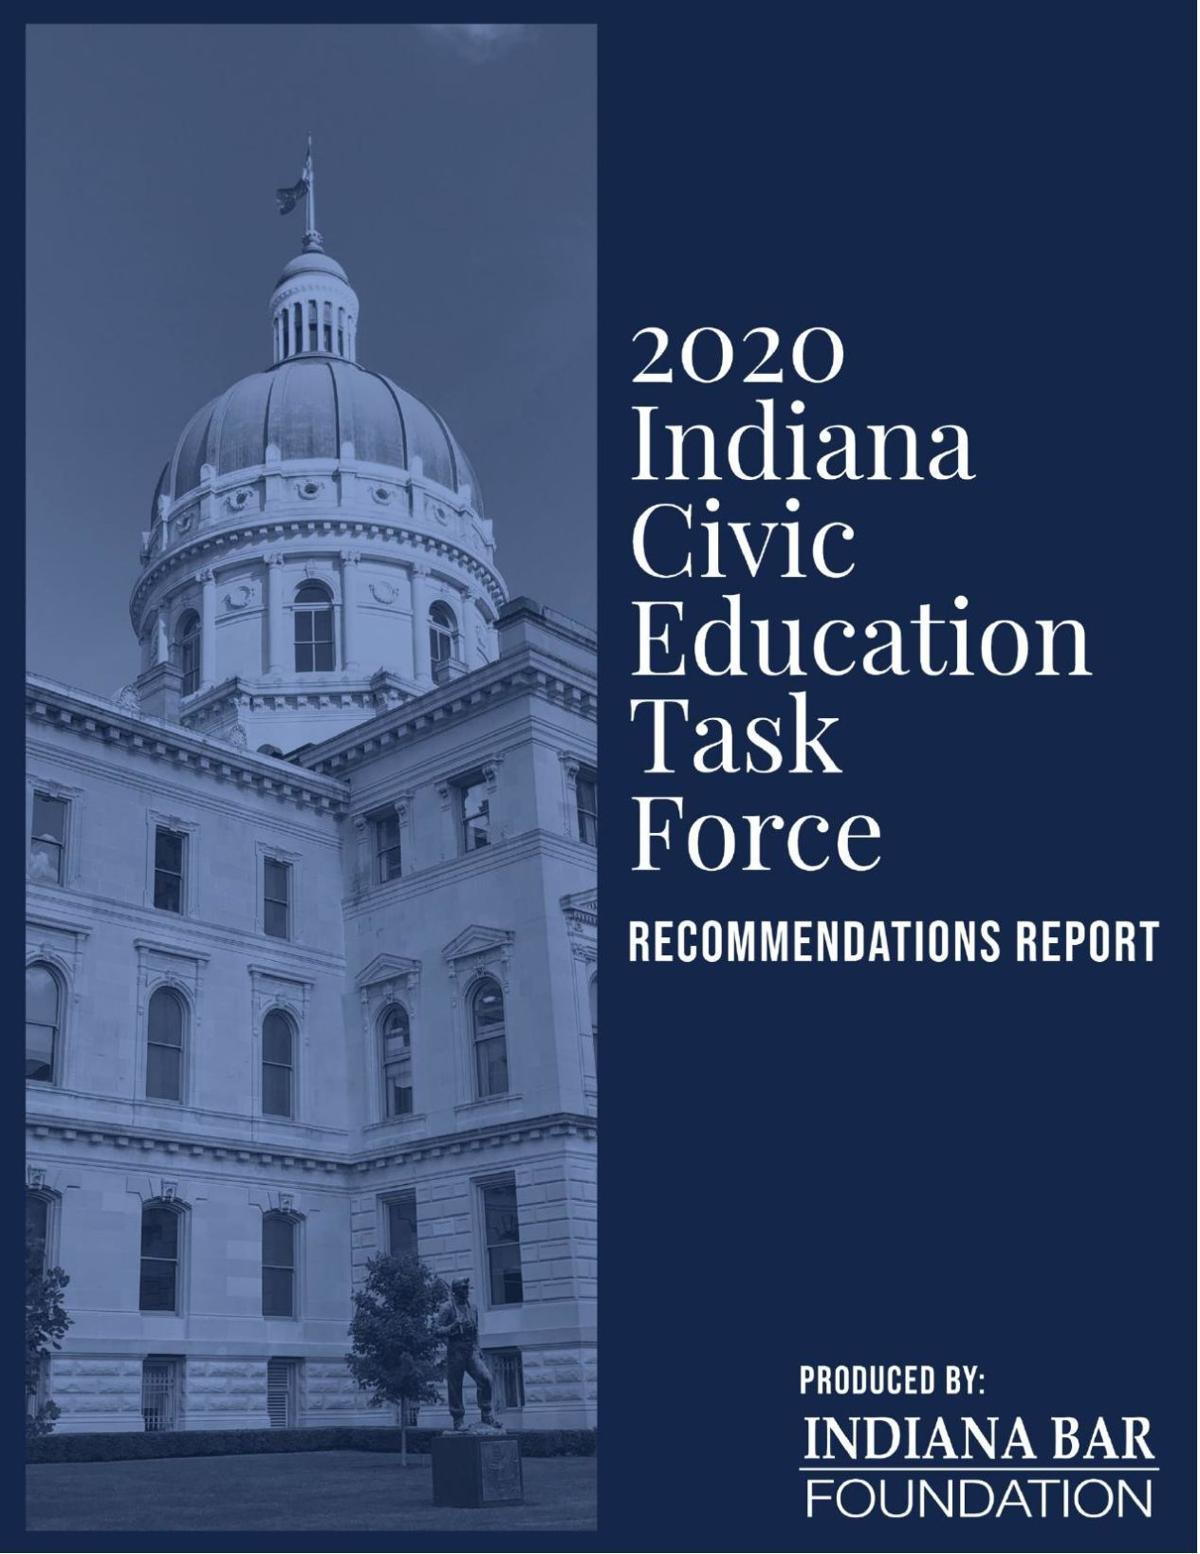 Indiana Civic Education Task Force 2020 report